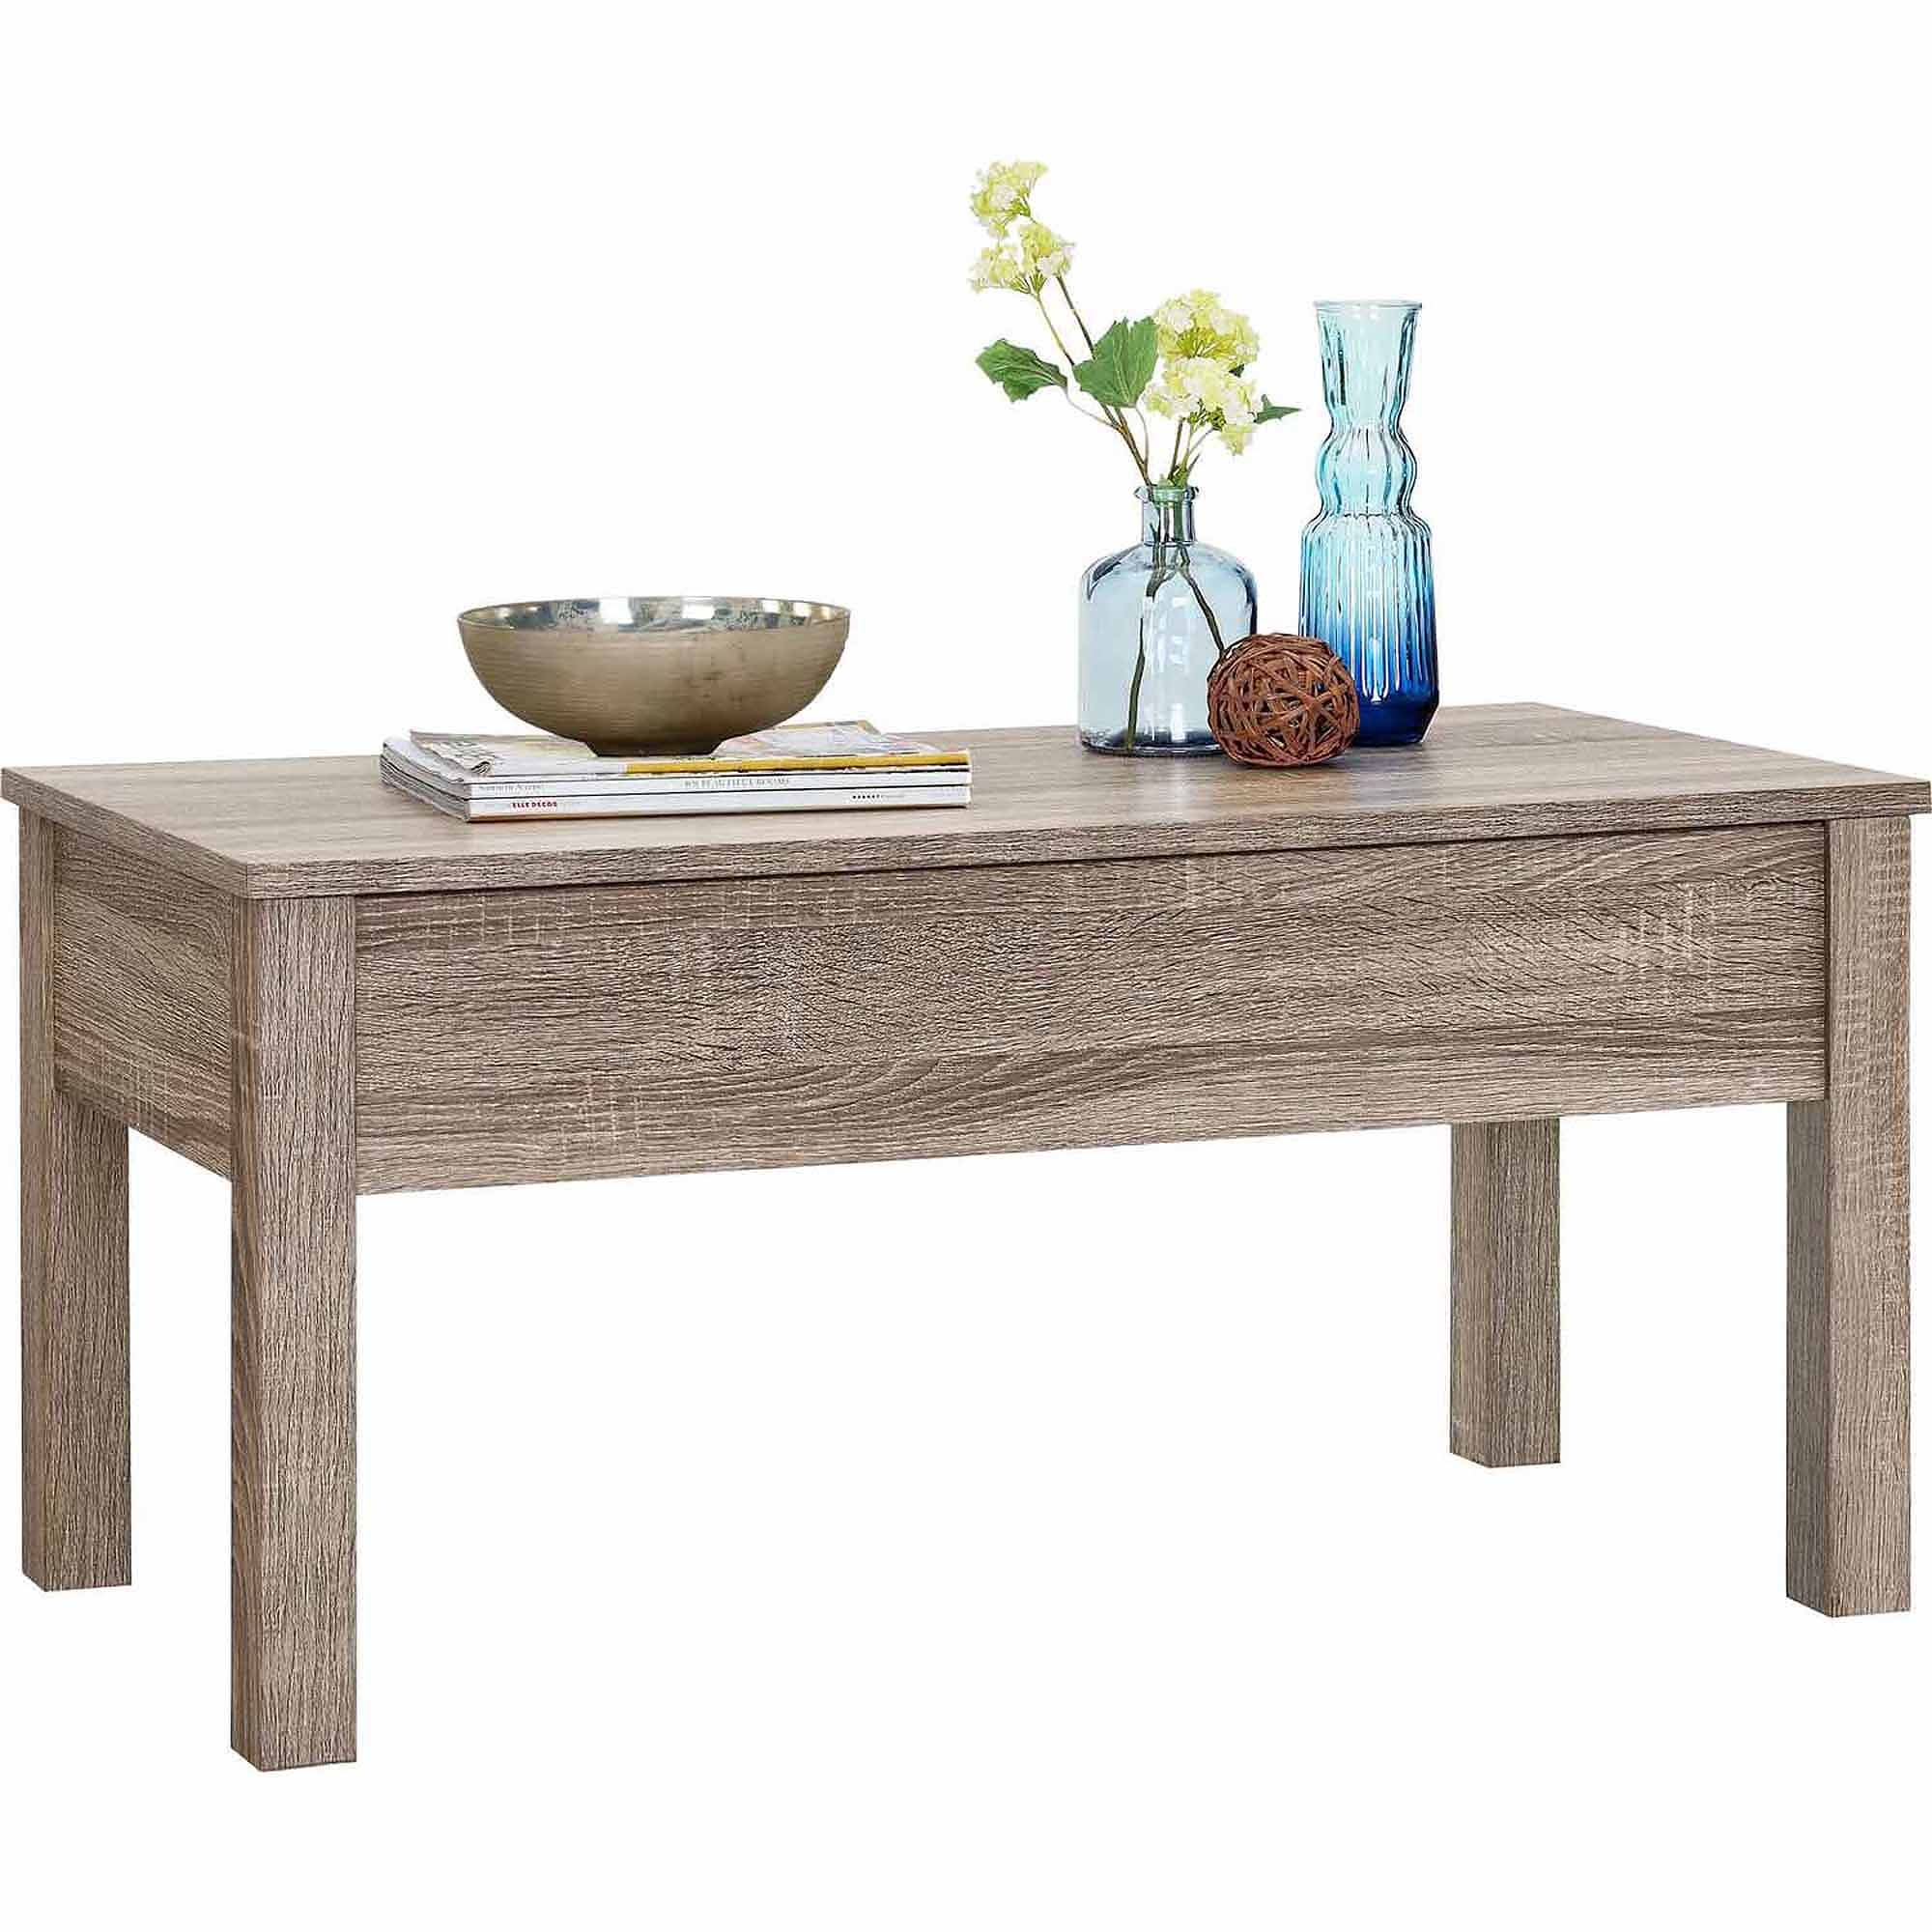 furniture beautiful collection coffee table better homes and gardens target mirrored accent white end tables lift top with storage threshold teal garden for small patios mini side